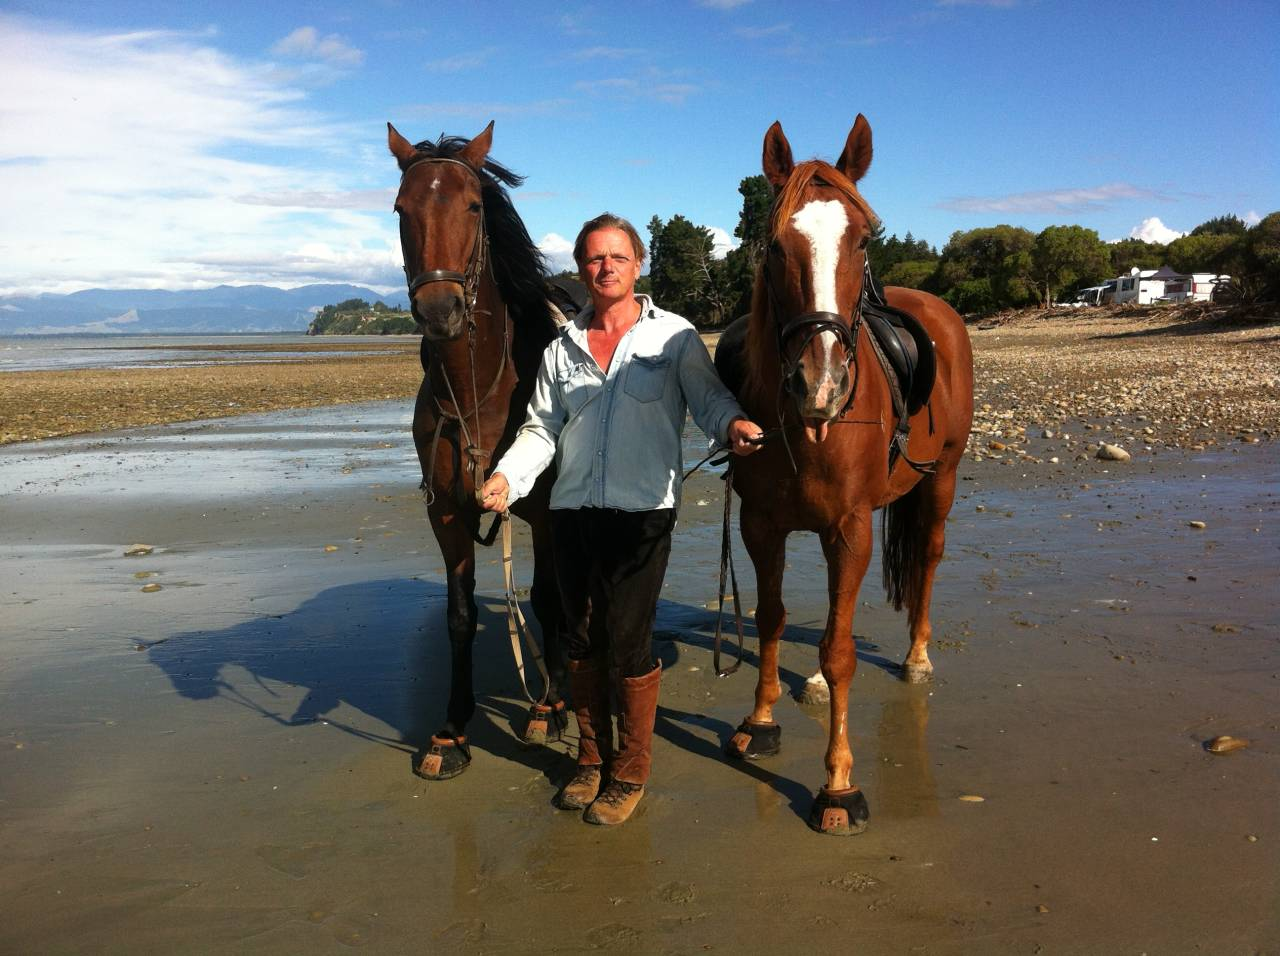 At Kina Beach with the horses